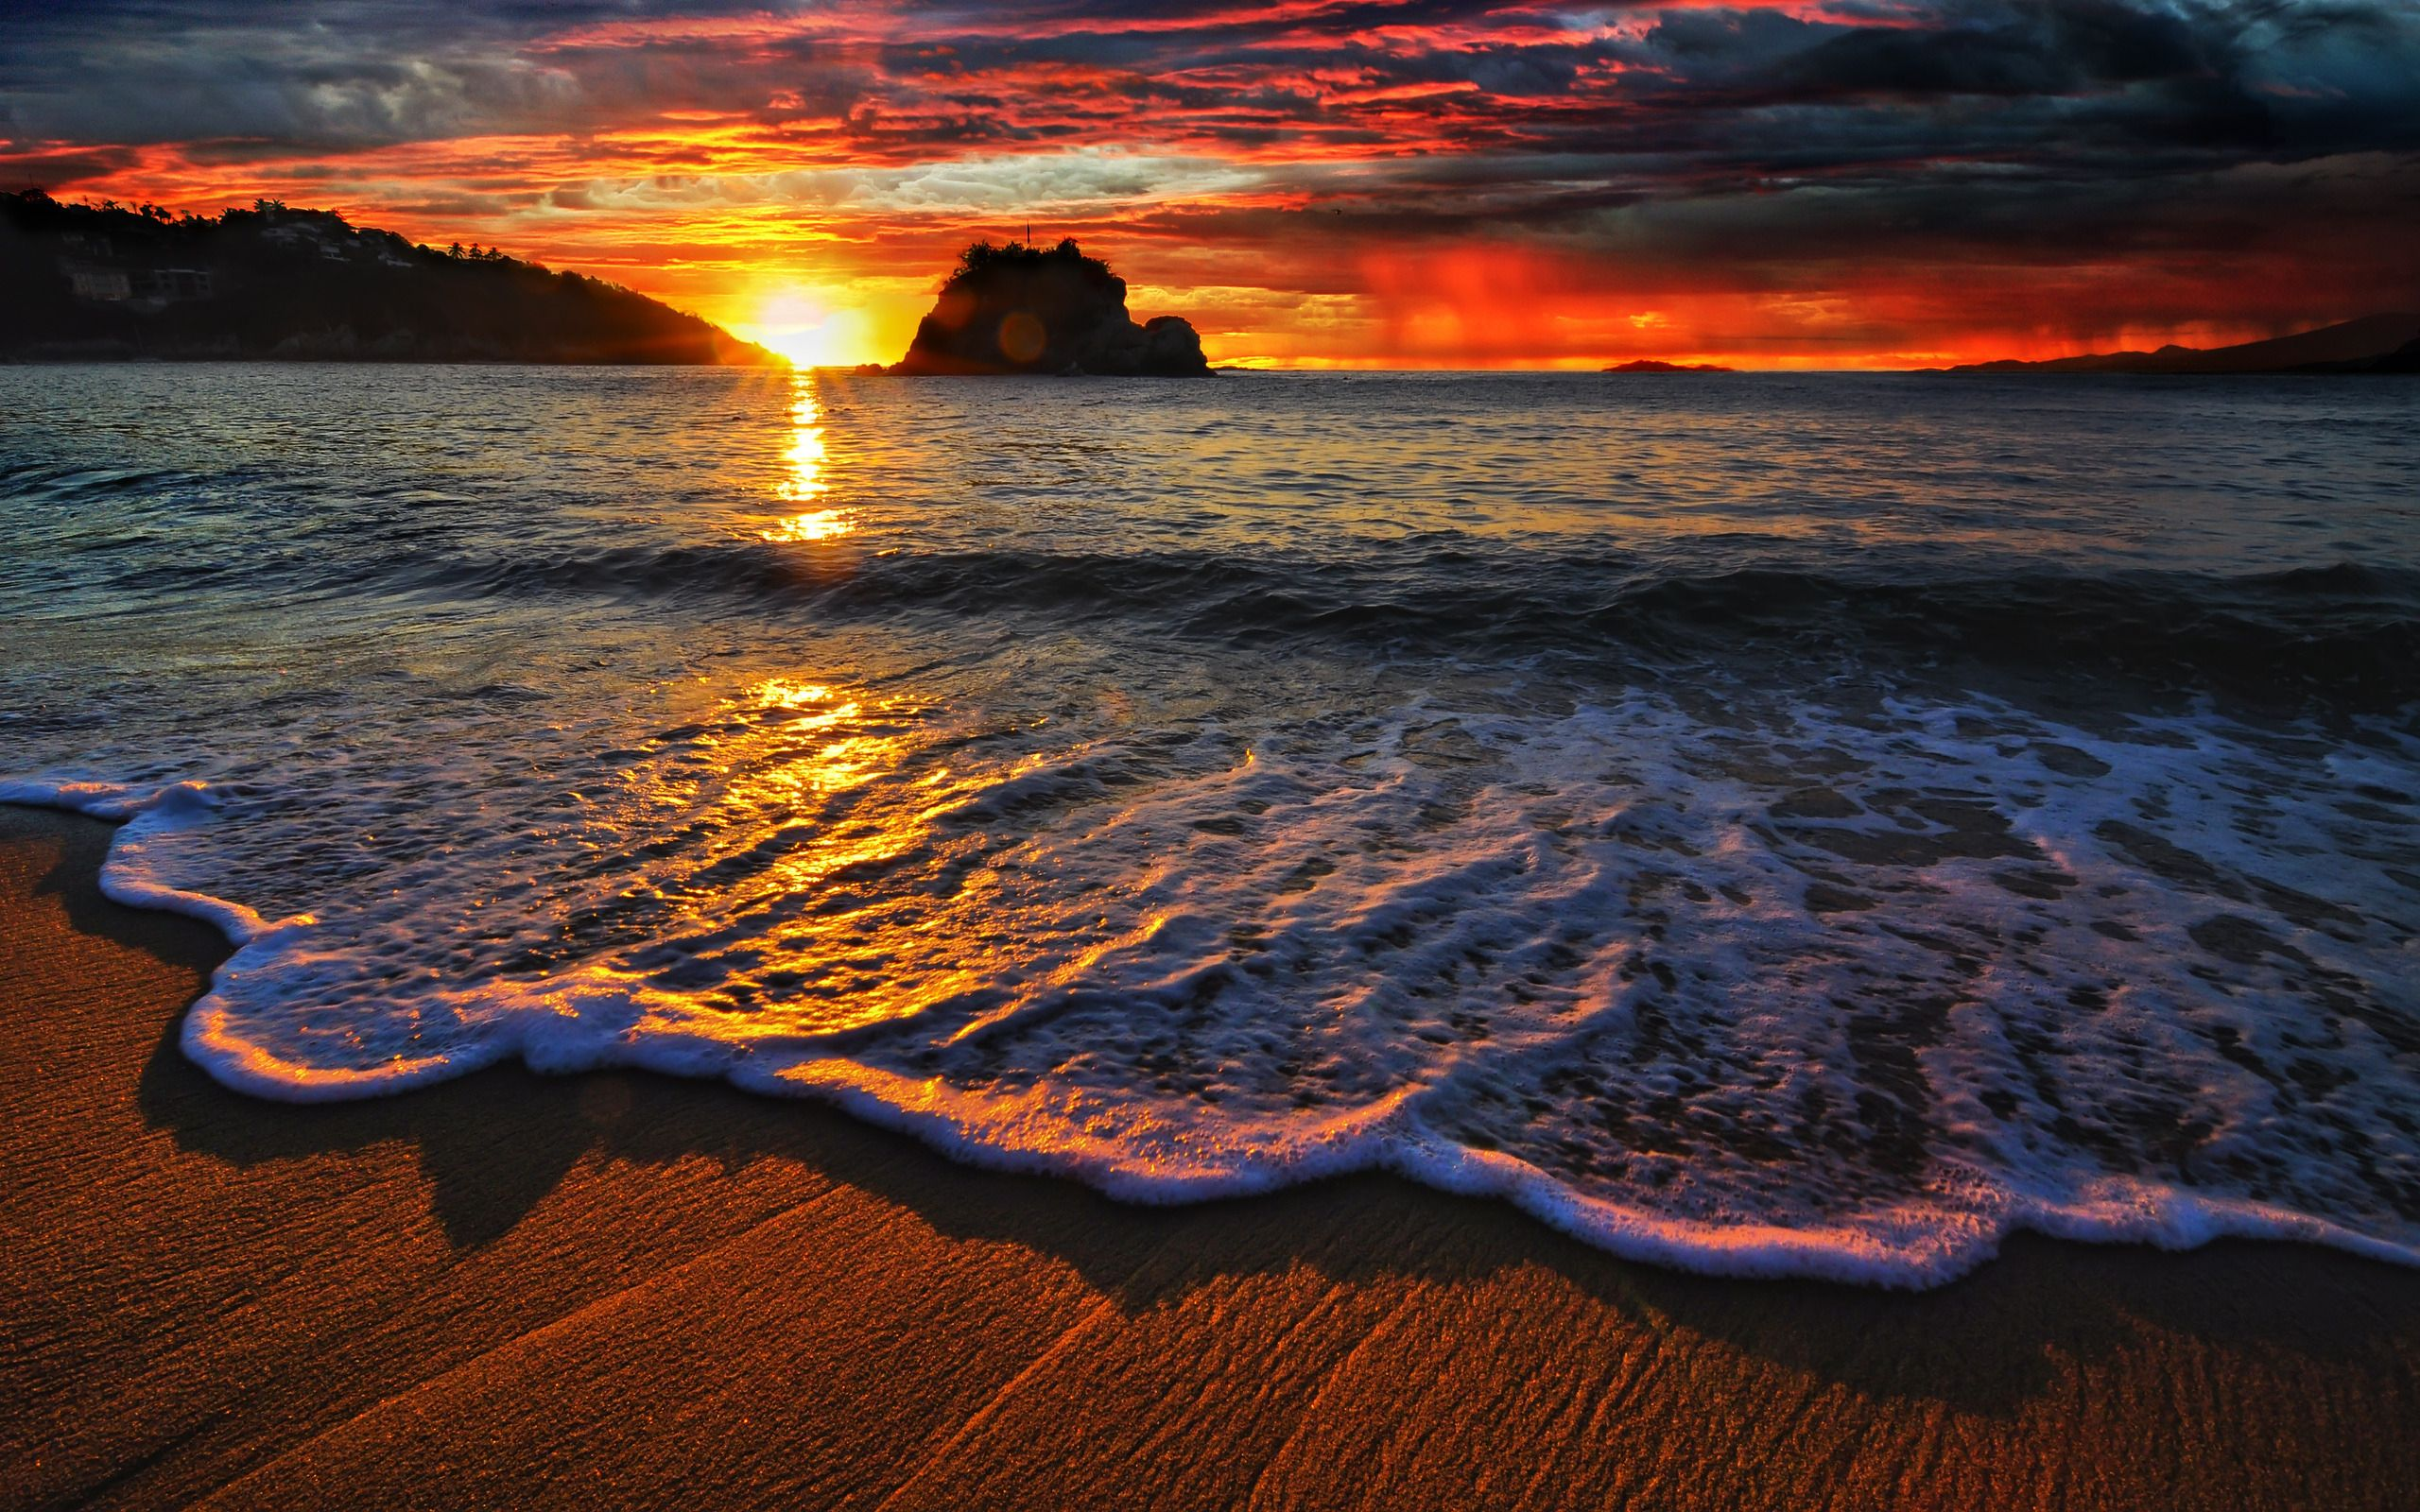 sunset pictures hd